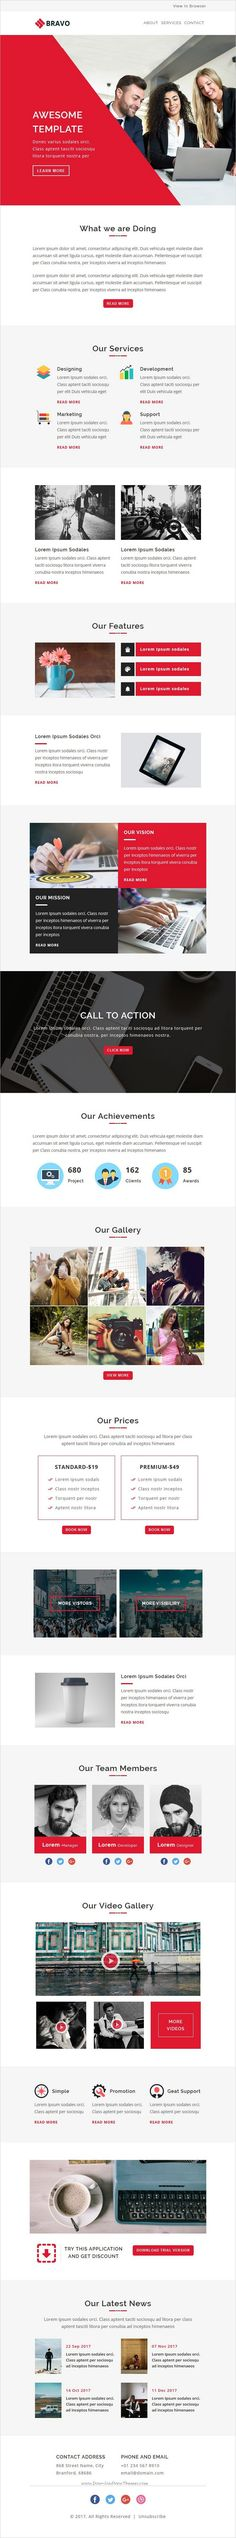 ENewsletter  Multipurpose Email Template  Campaign Monitor